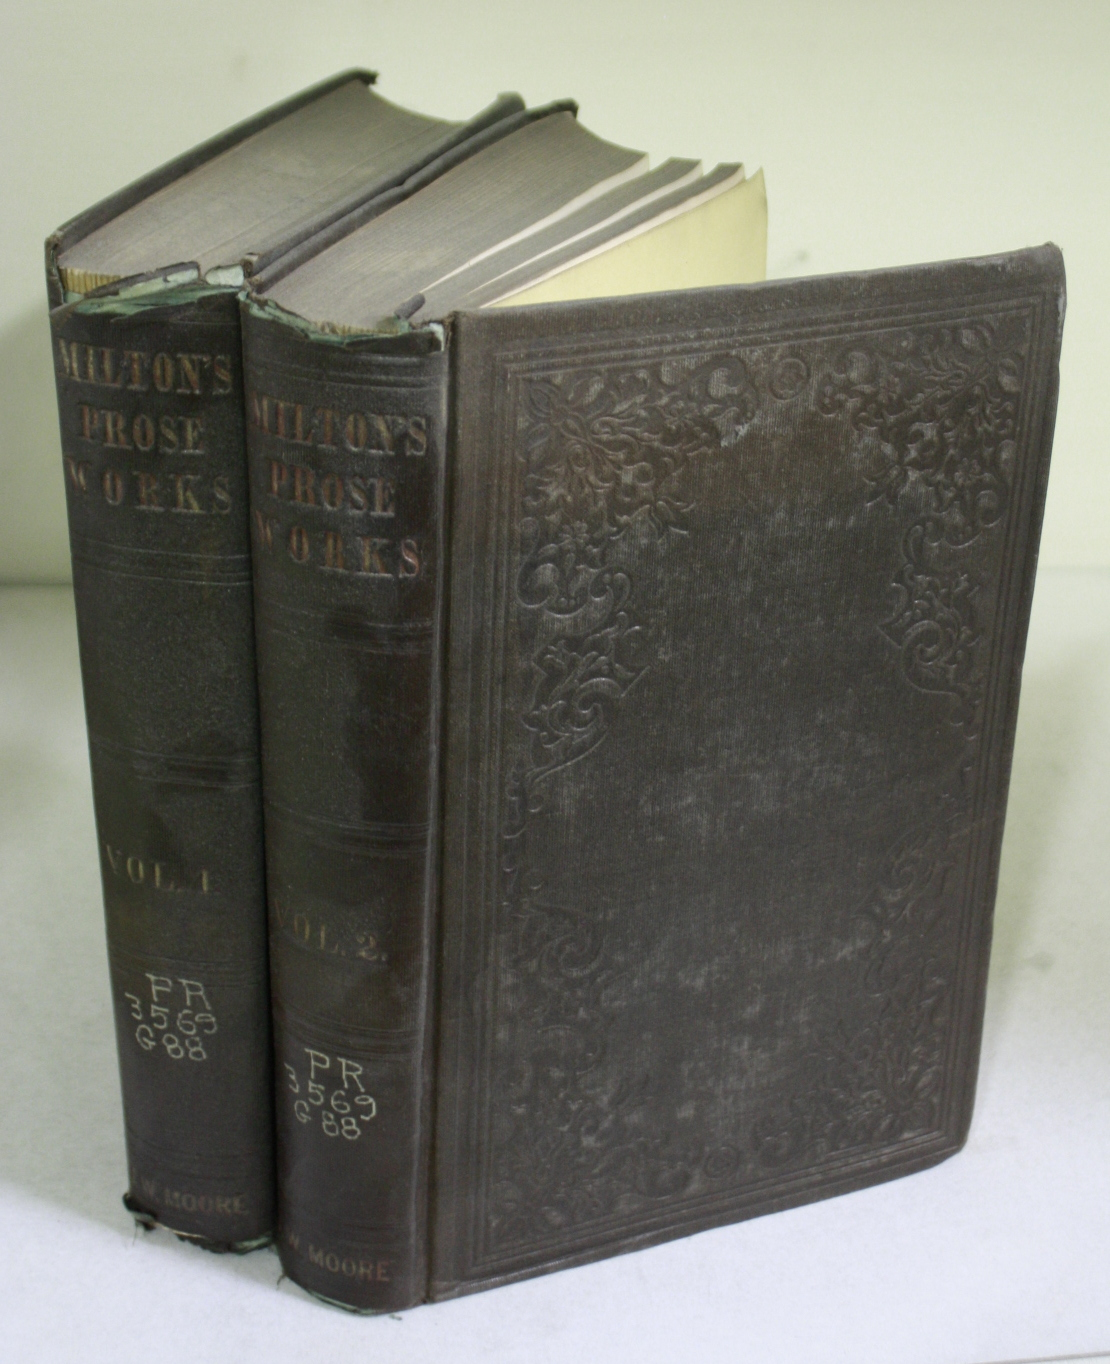 The Prose Works of John Milton : With a Biographical Introduction Volumes I and II